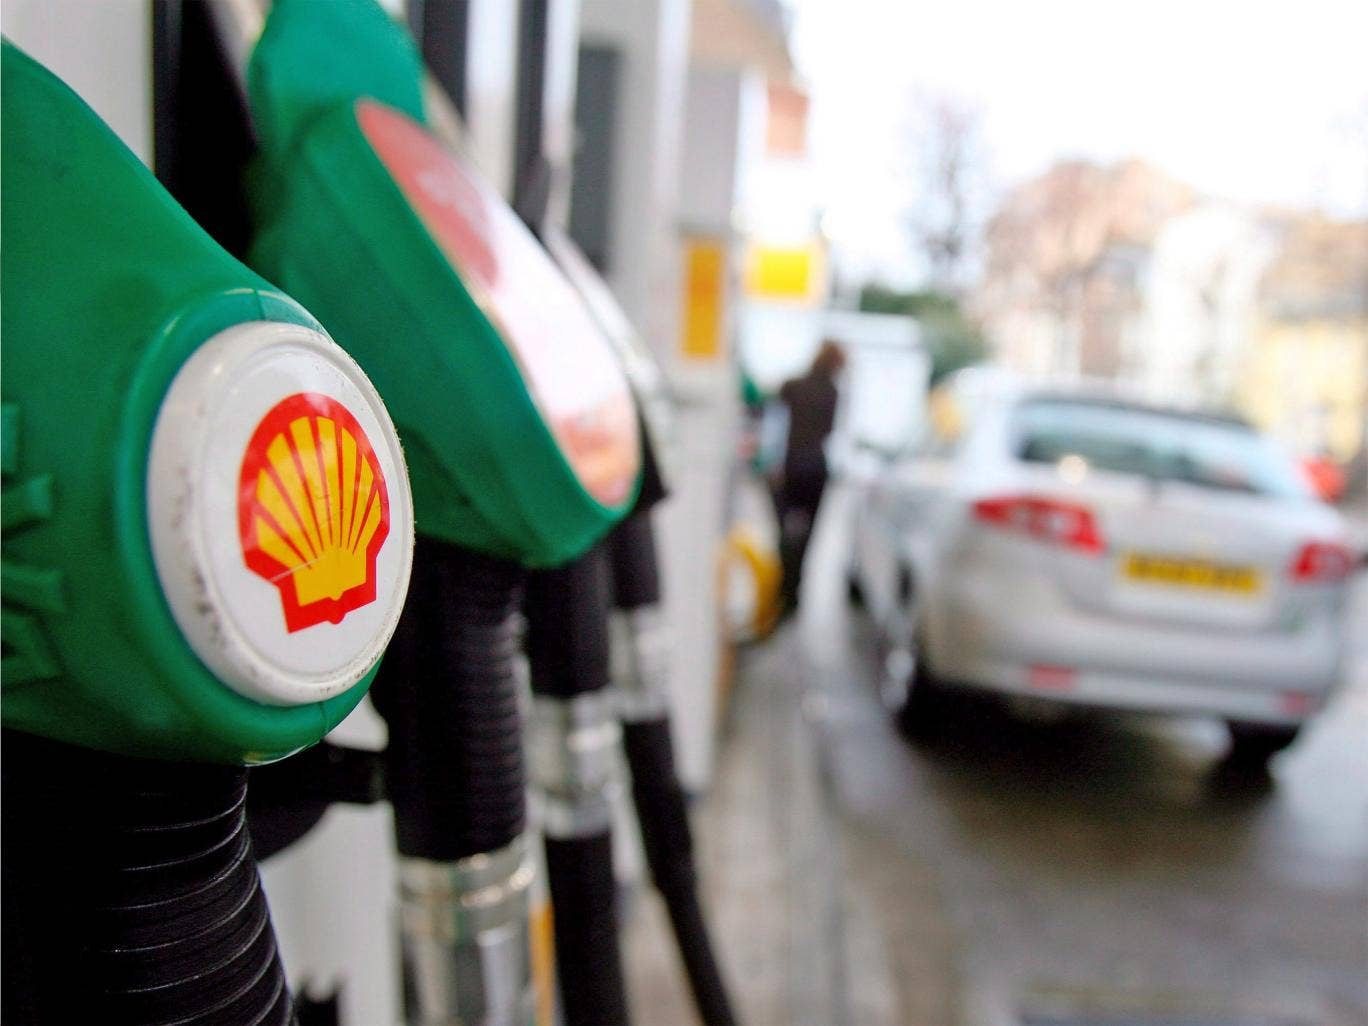 A G20 report last summer found petrol pricing to be wide open to 'manipulation or distortion'